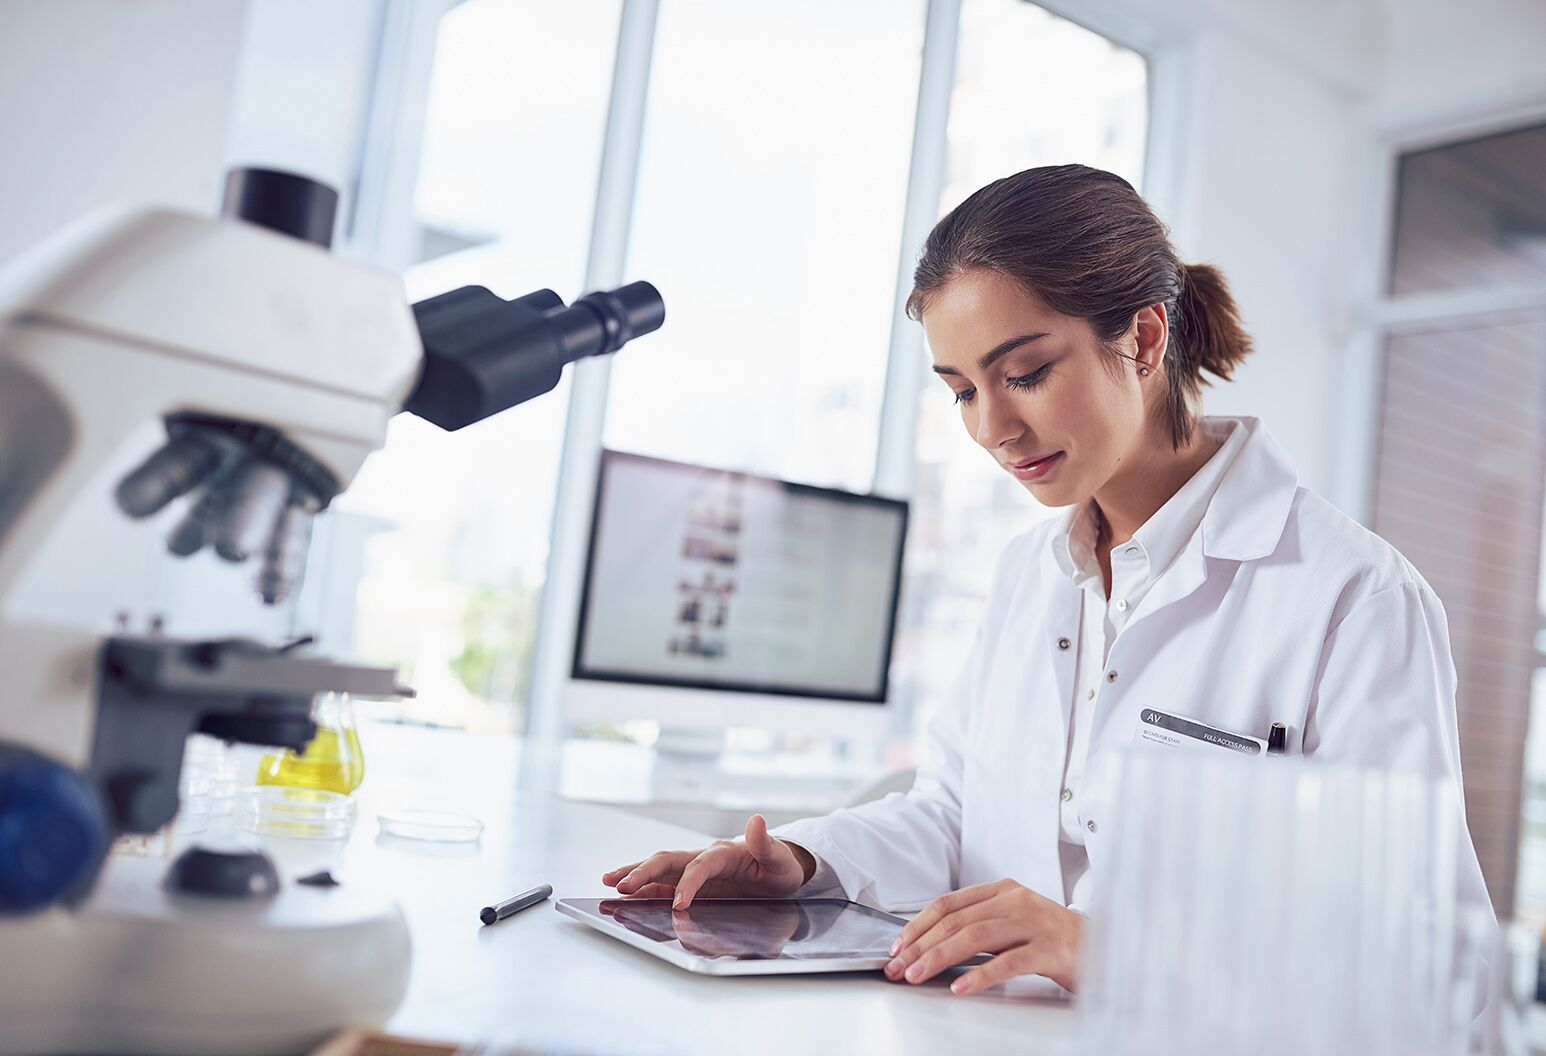 Female researcher in the lab analyzing data based on the latest research project.